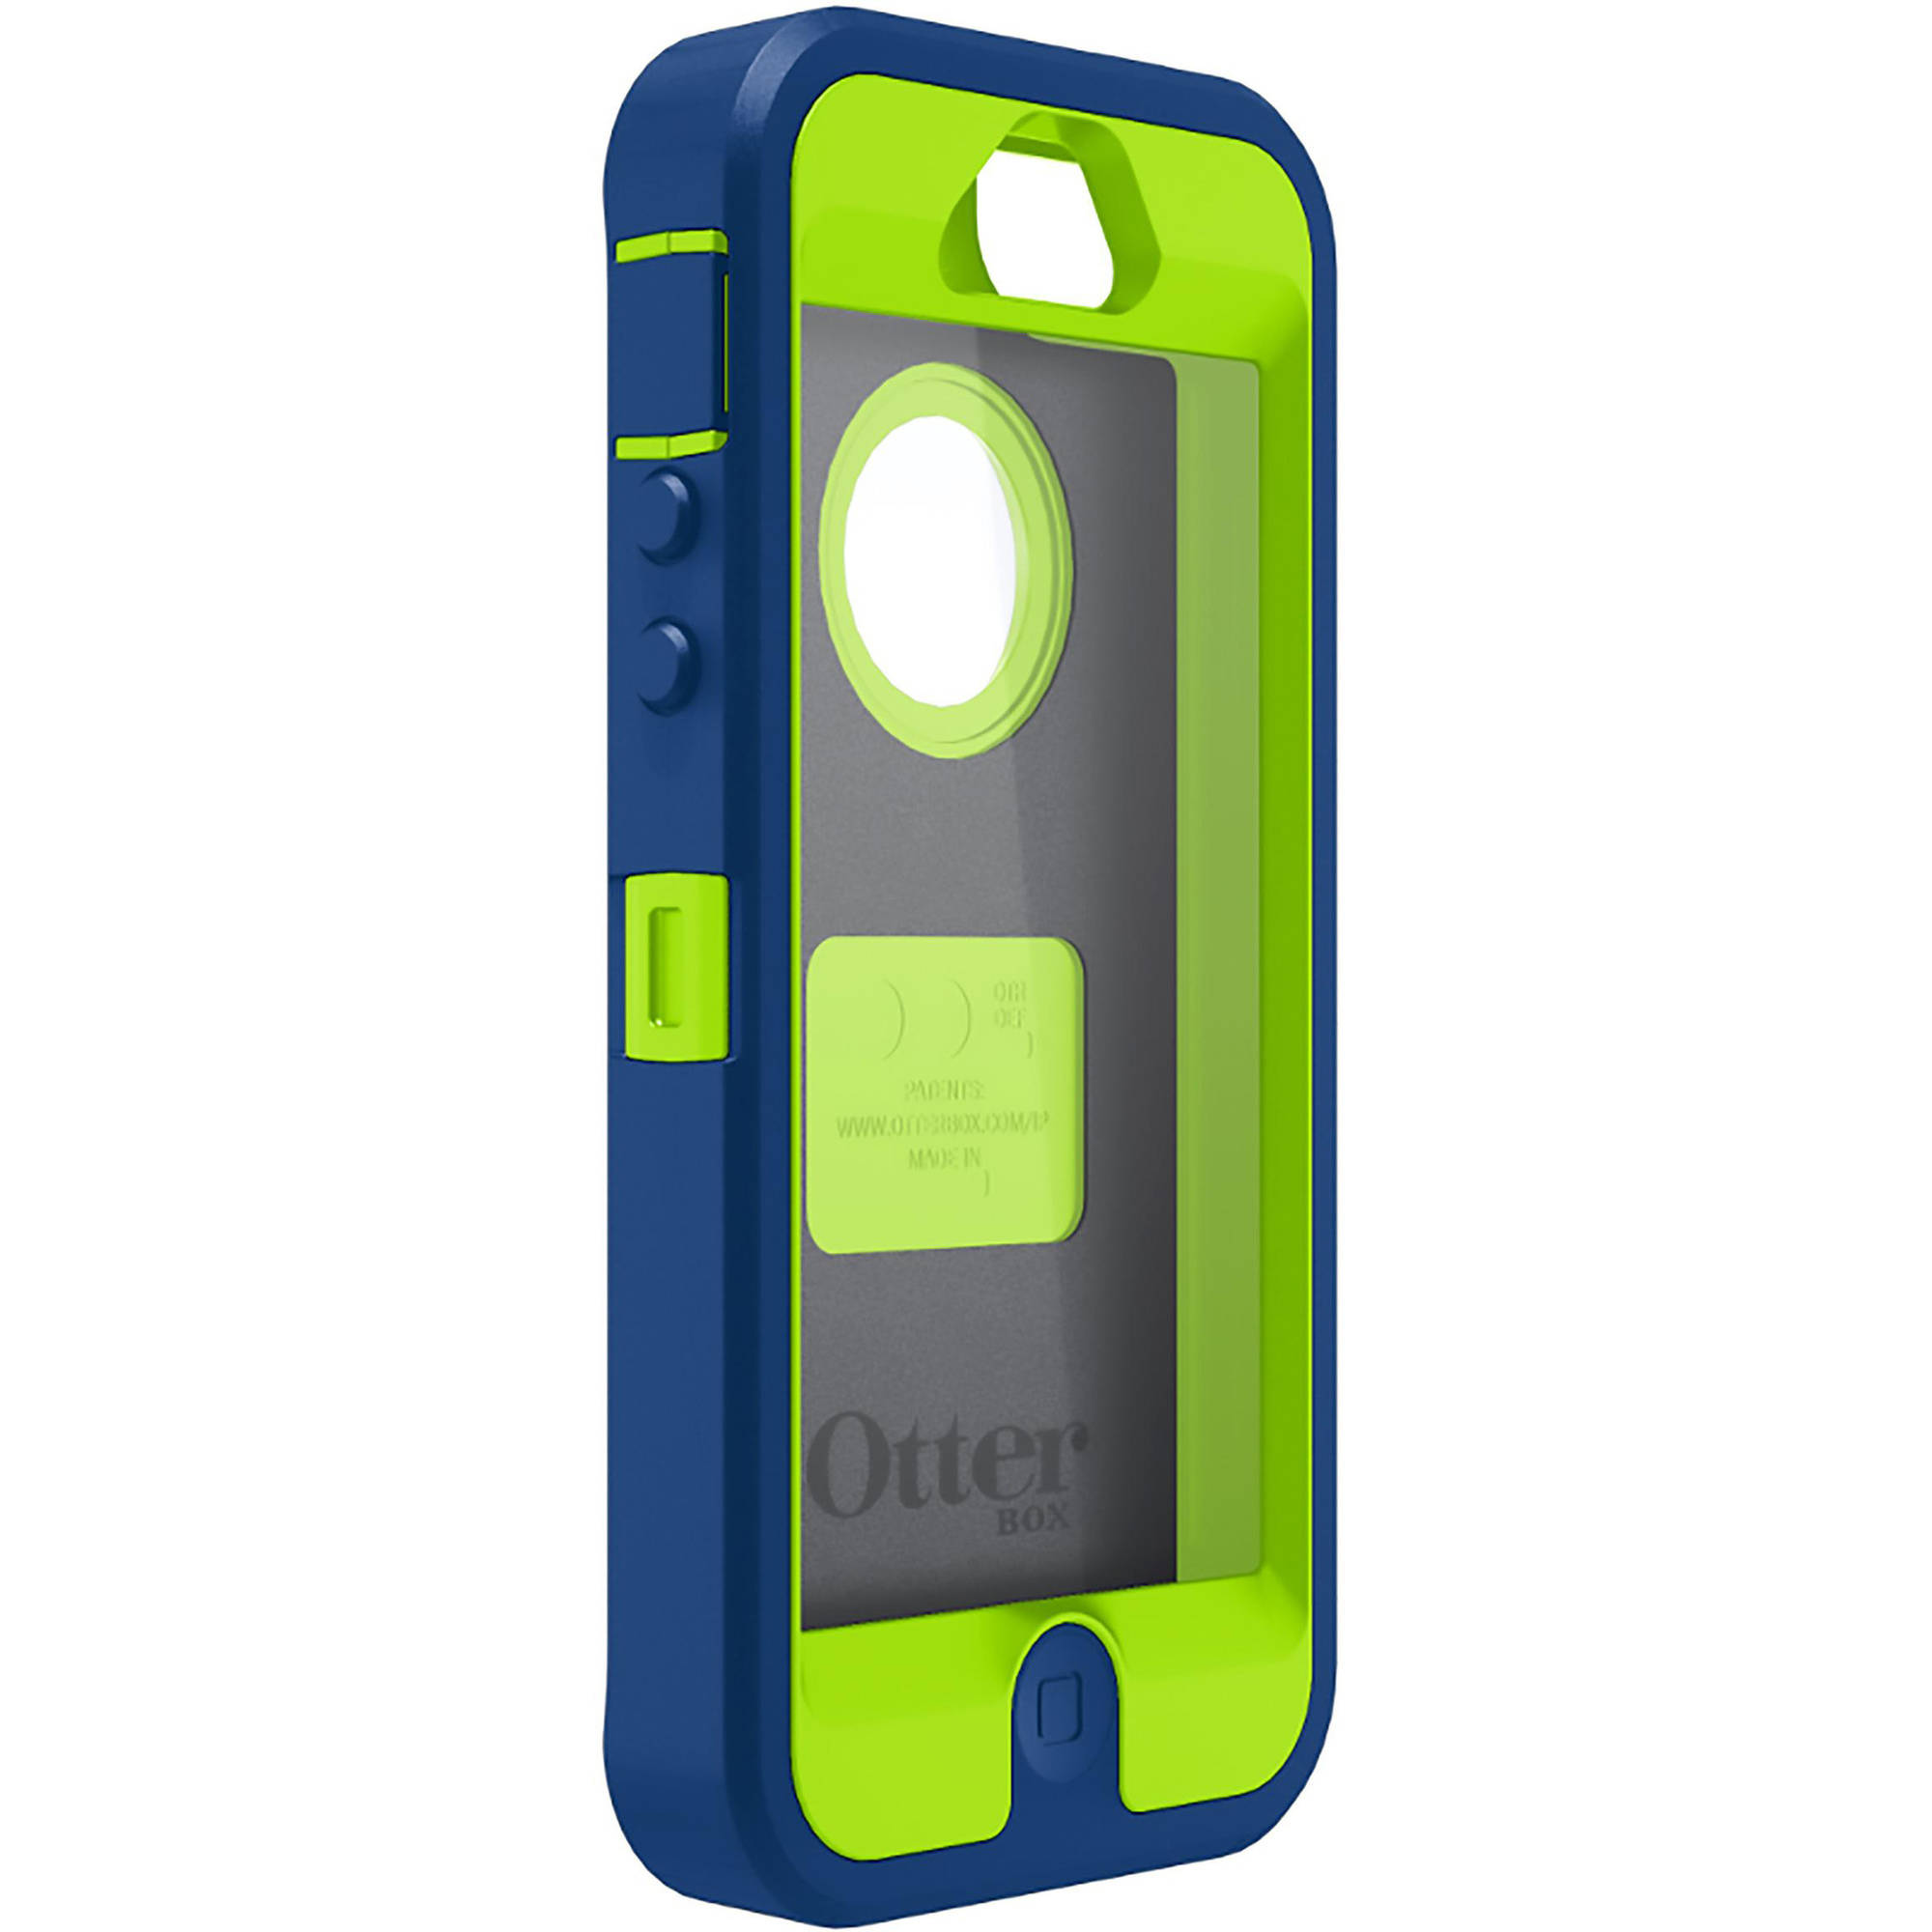 OtterBox 77-34152 Defender Series Case for Apple iPhone 5/5s